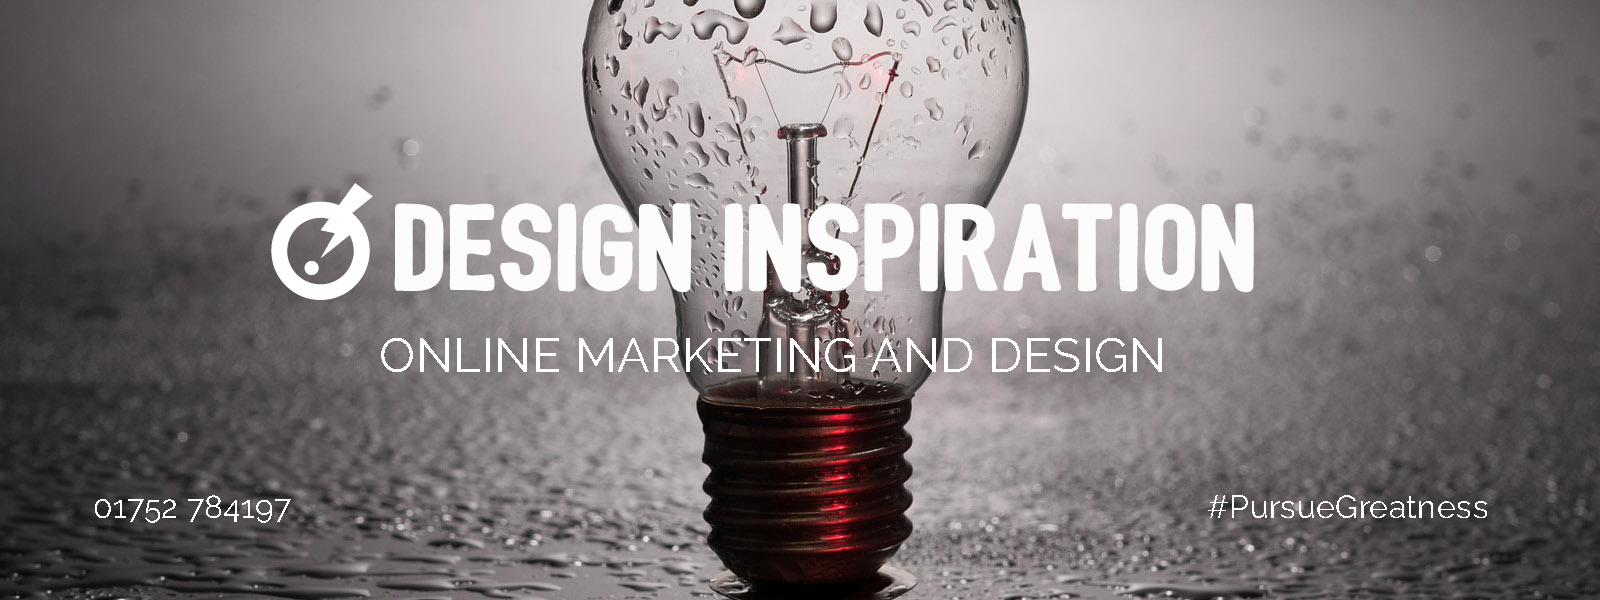 Design Inspiration - online marketing and design